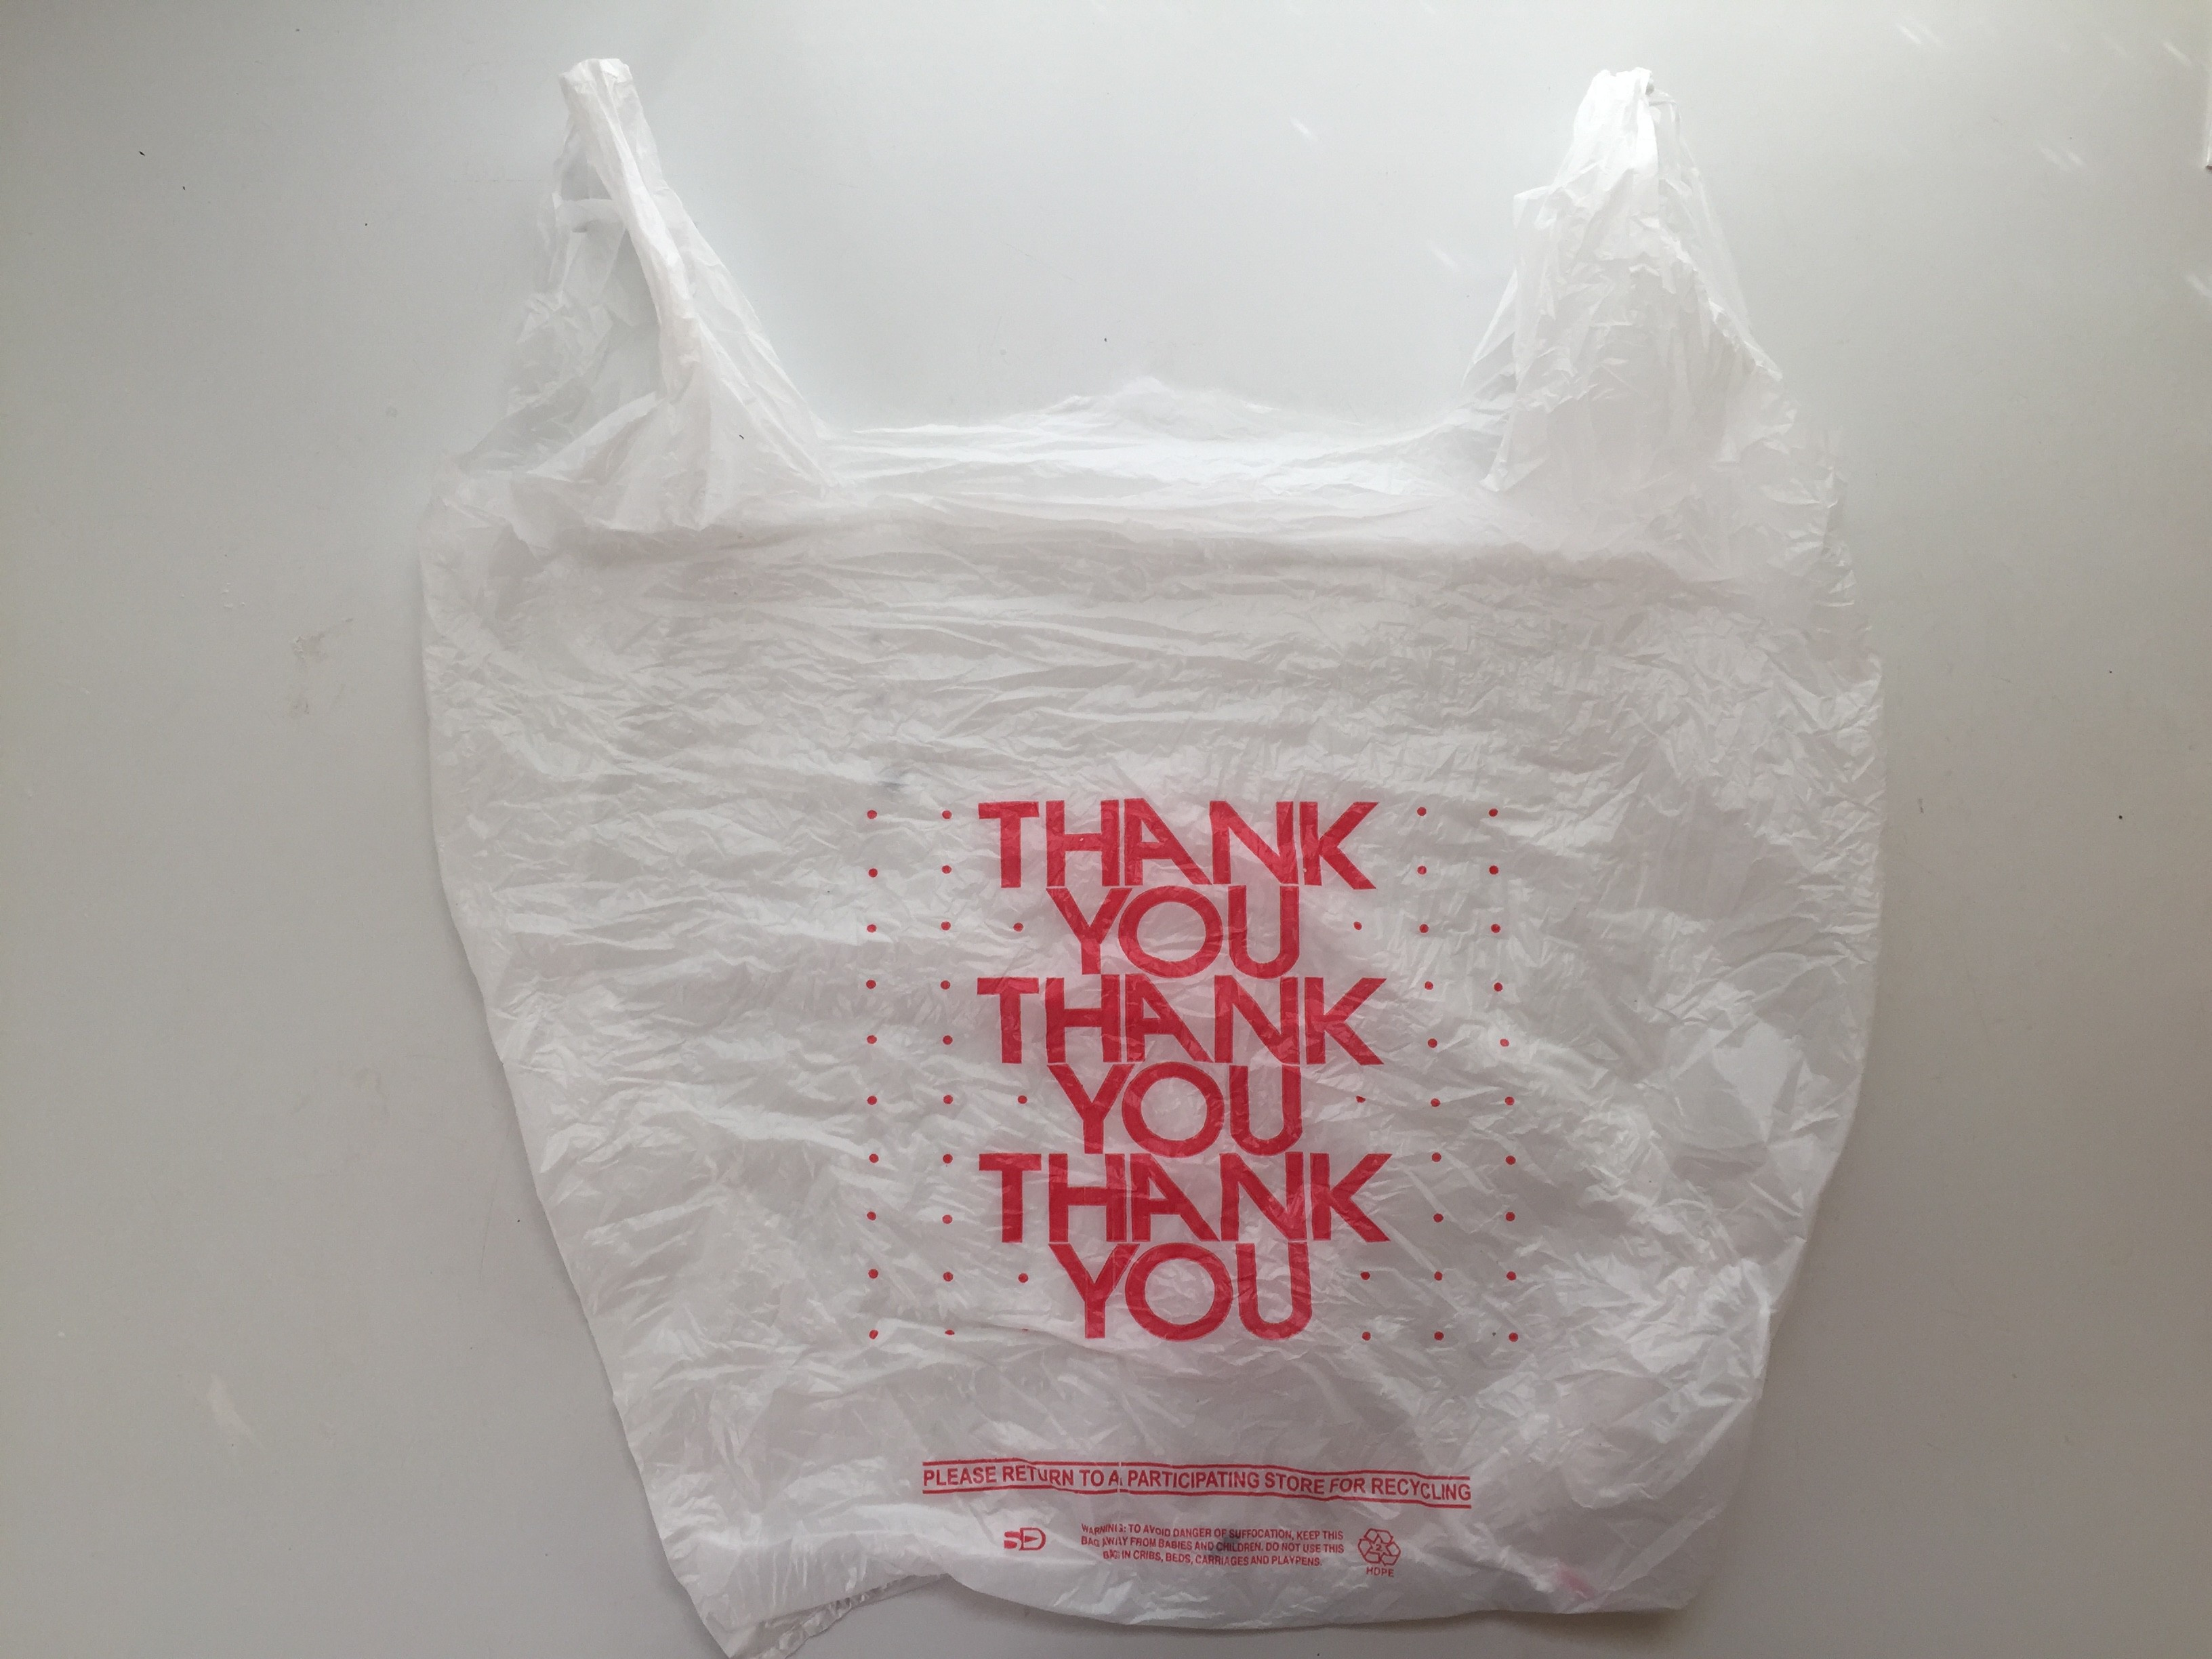 Plastic bag for you - In The Past Few Years There Have Been Many Laws Enacted To Restrict Tax And In Some Cases Ban The Use Of Plastic Shopping Bags